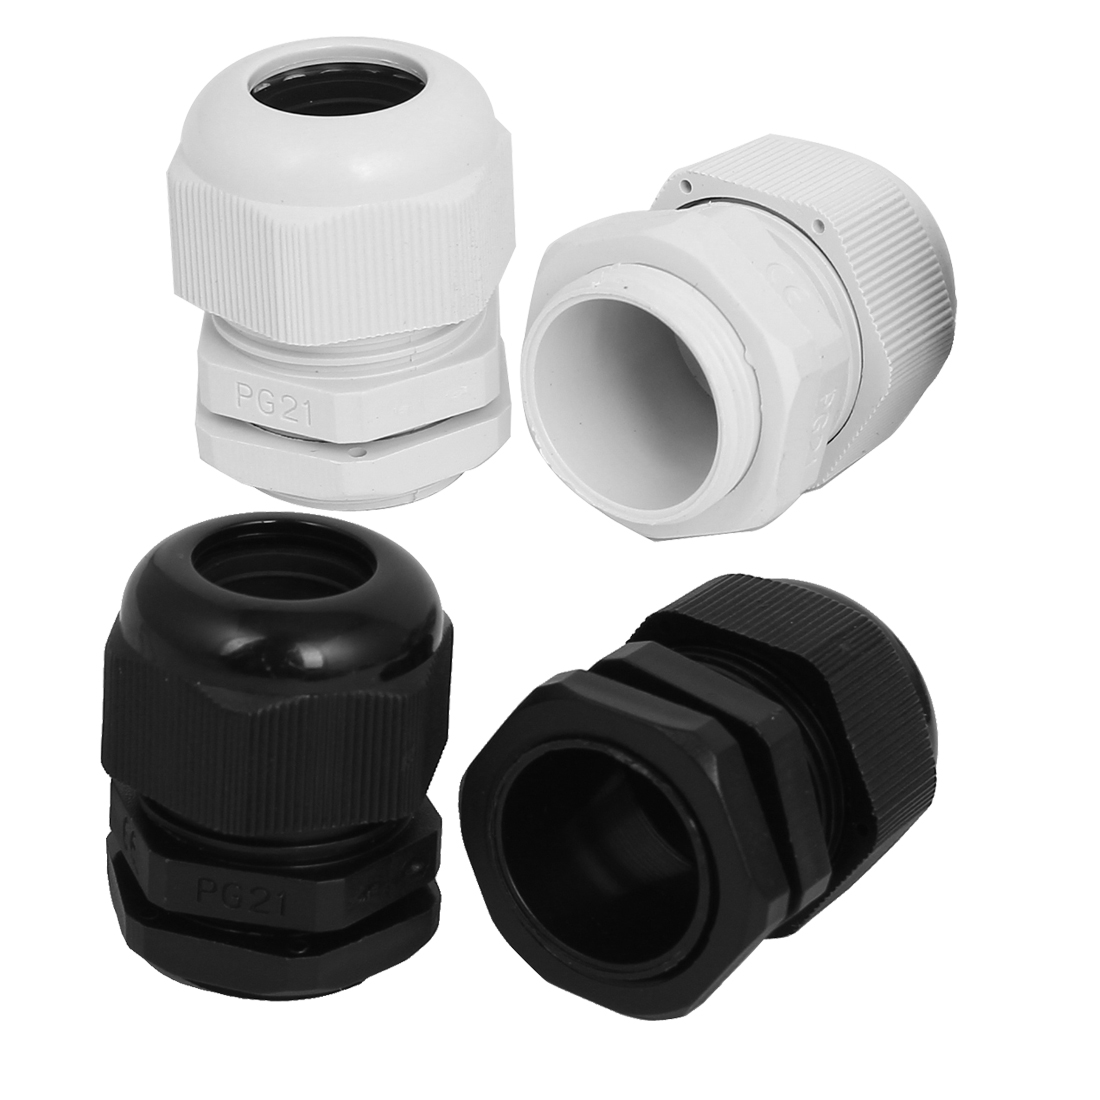 Black White Nylon PG21 13-18mm Wire Waterproof Fastener Locknut Cable Gland 4pcs